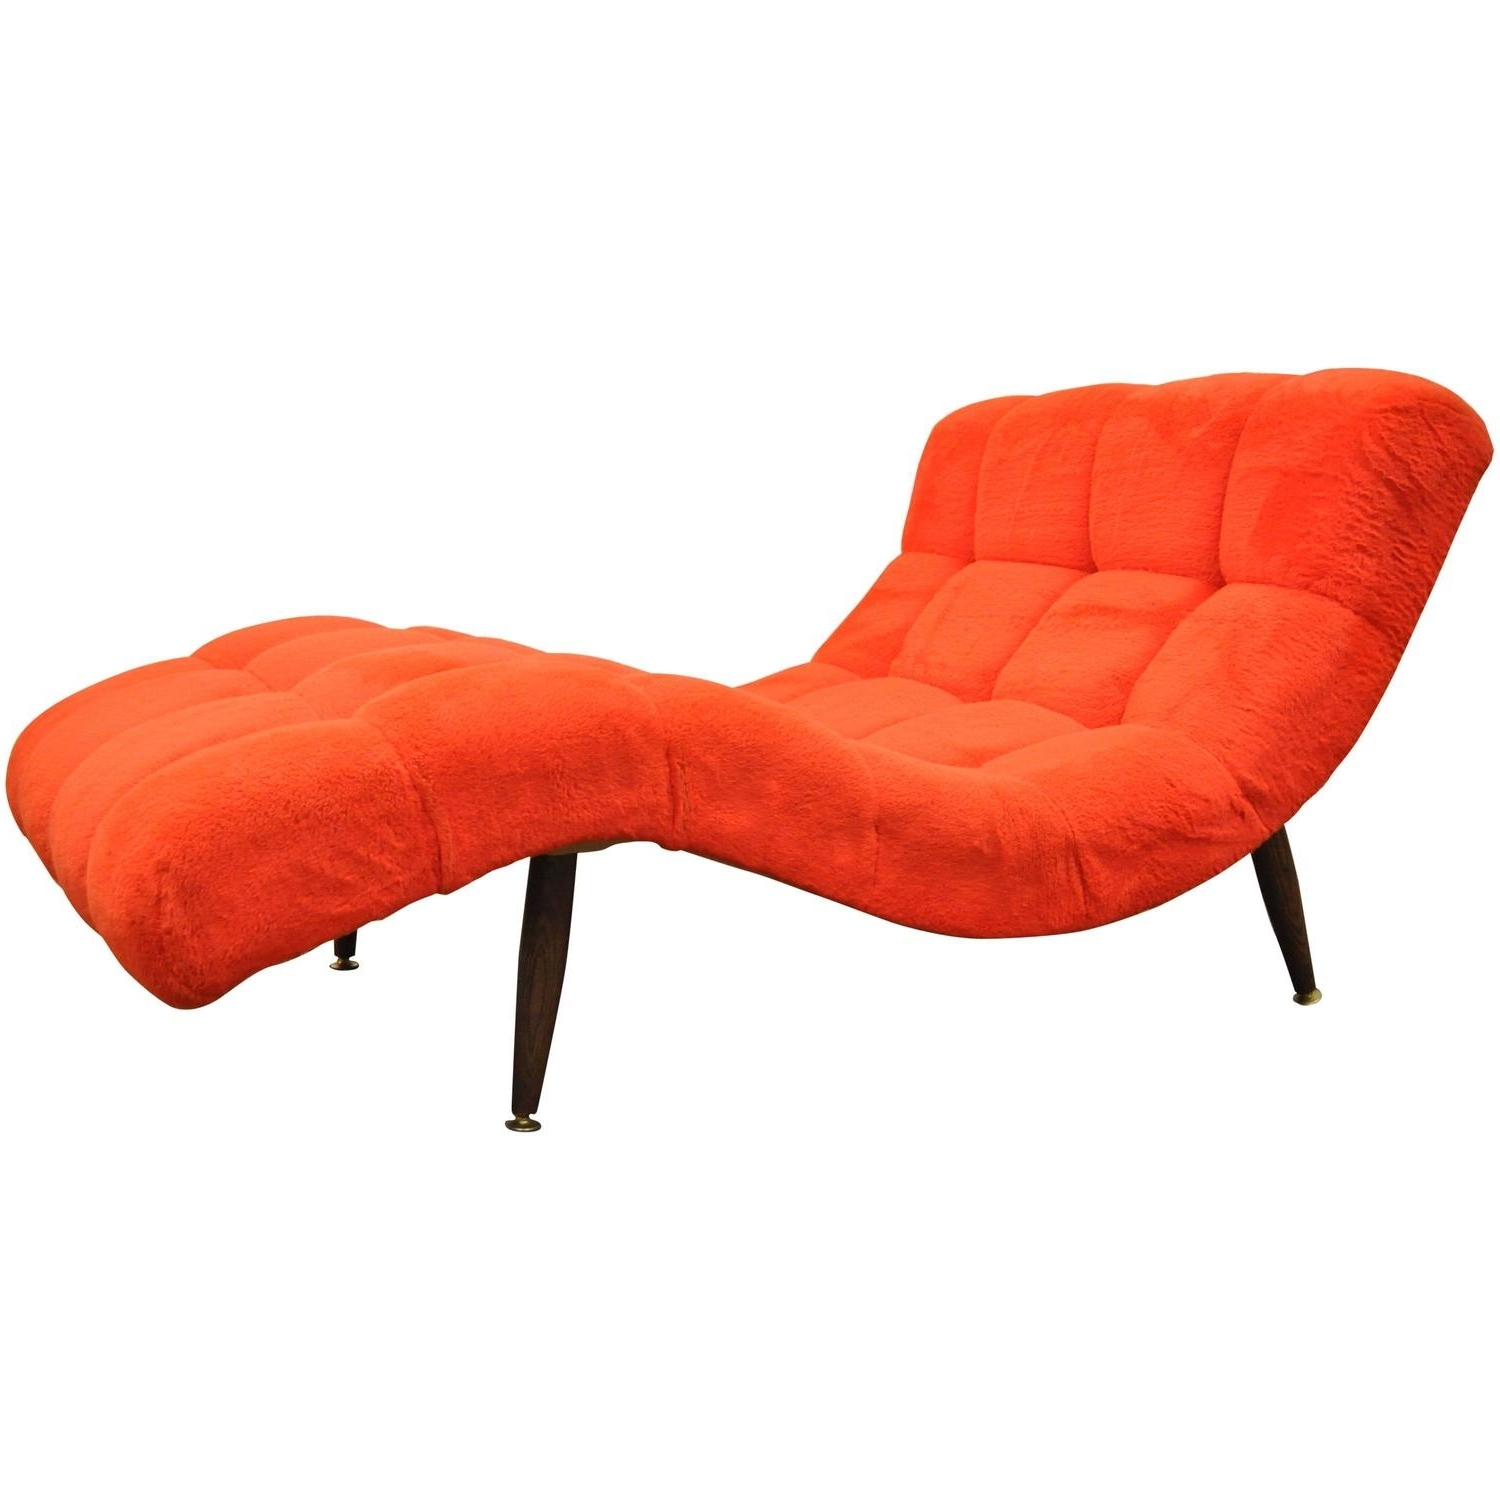 Vintage Mid Century Modern Double Wide Wave Chaise Lounge For Sale Regarding Recent Mid Century Modern Chaise Lounges (View 4 of 15)